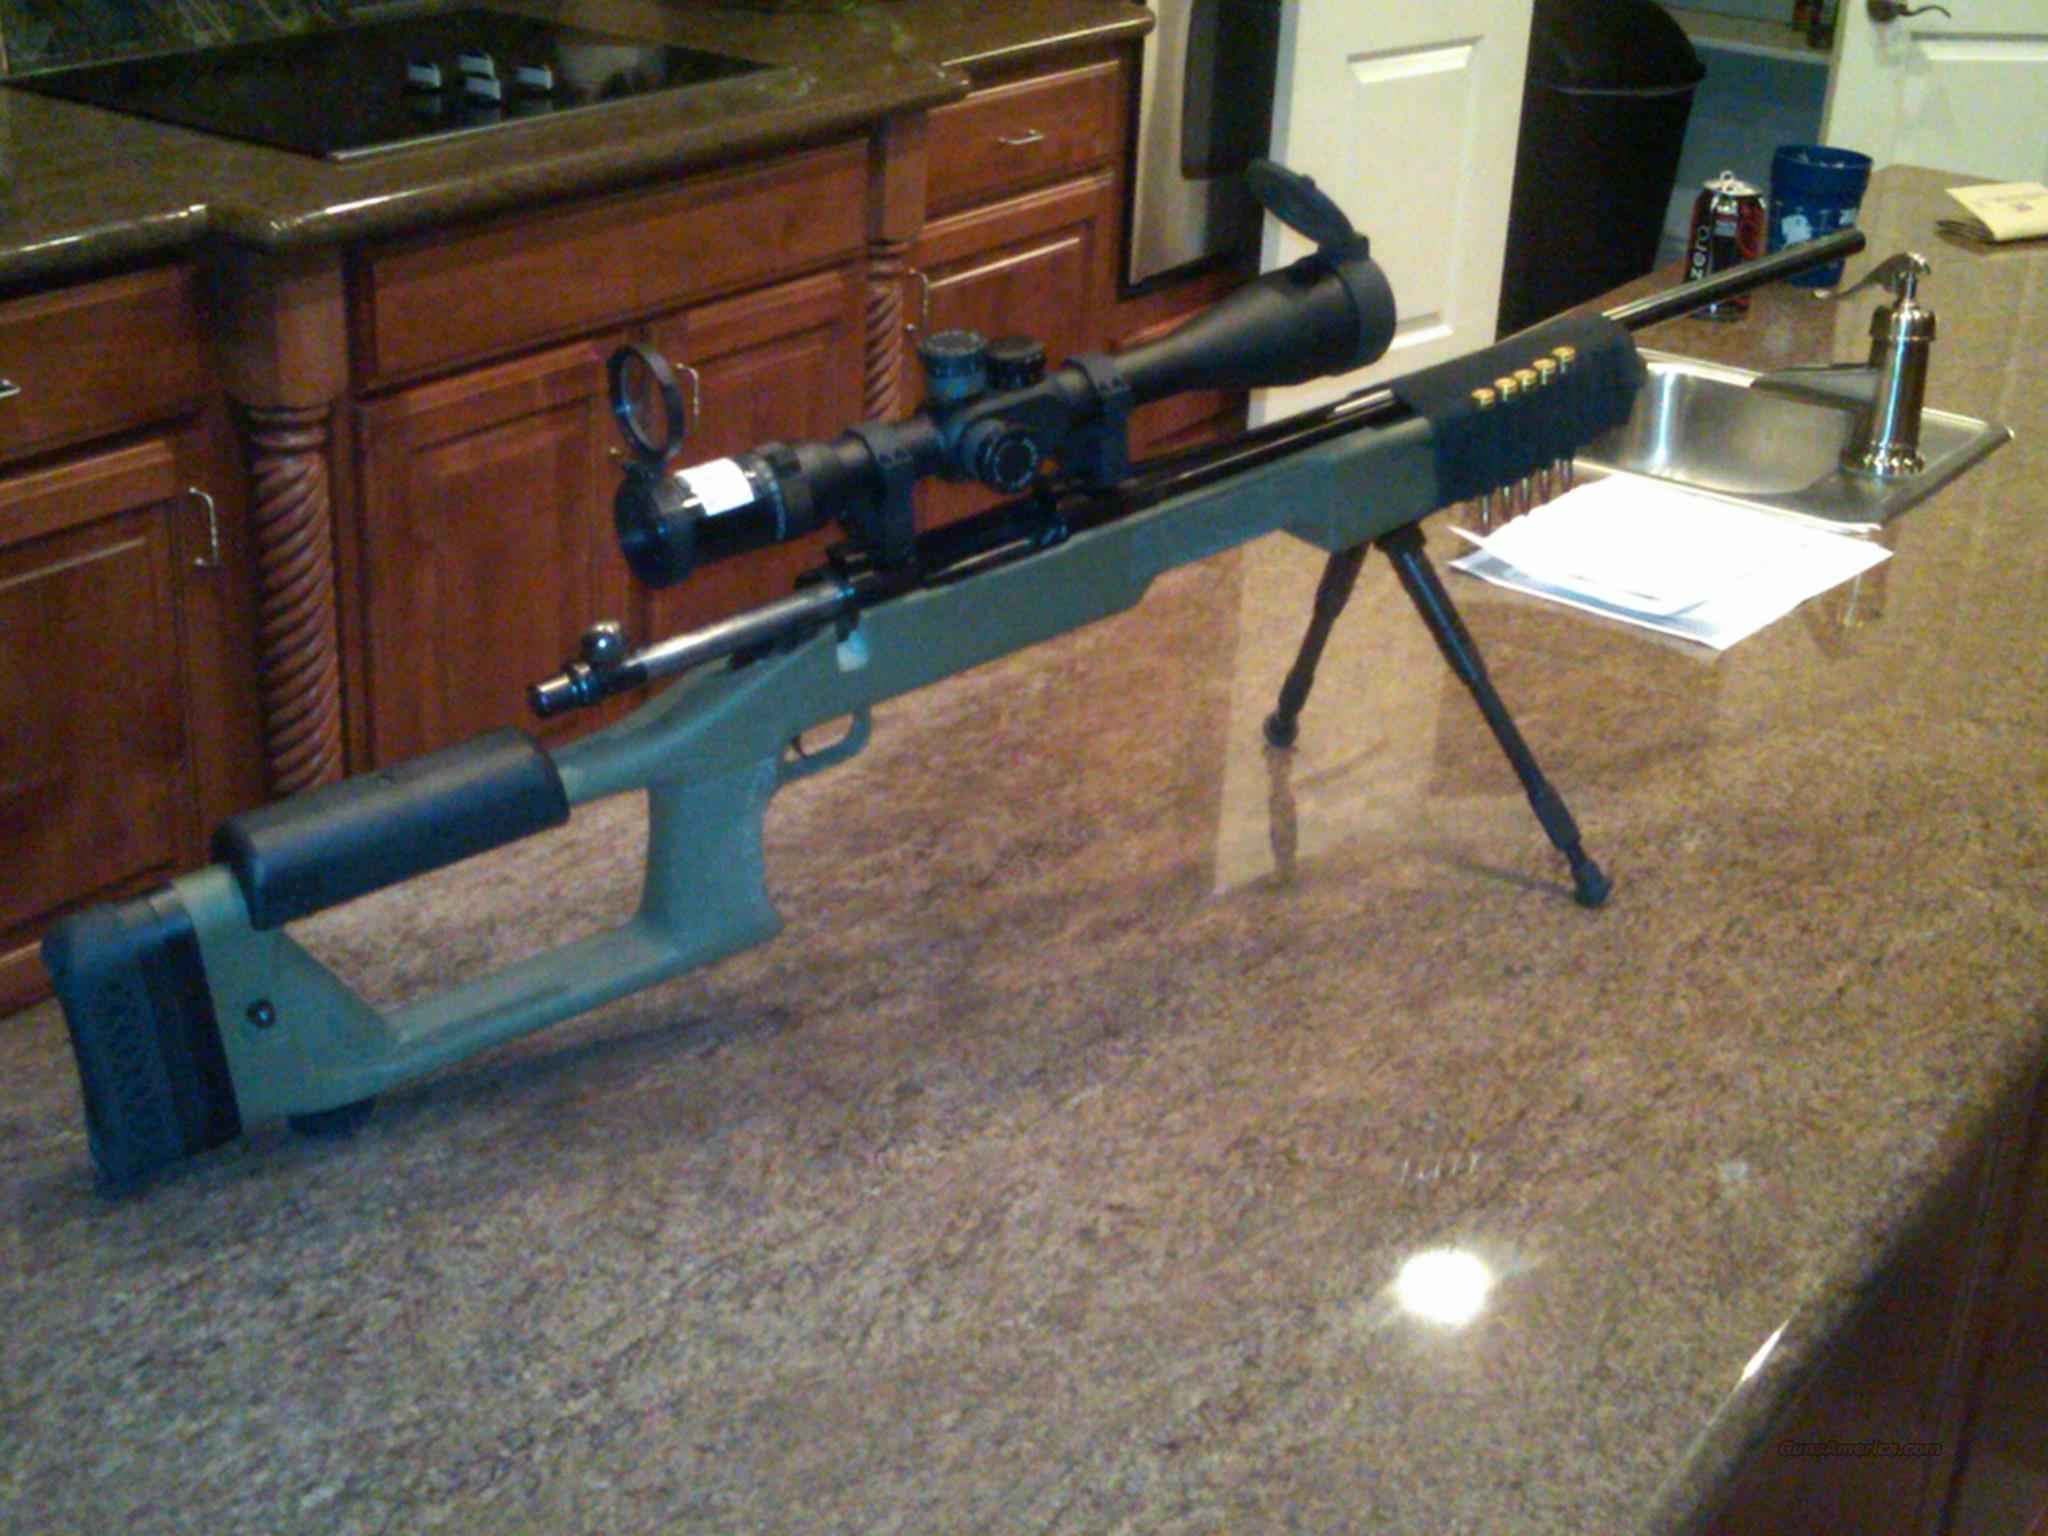 Remington 700 .270 choate tactical sniper stock  w/ scope & bipod  Guns > Rifles > Remington Rifles - Modern > Model 700 > Tactical